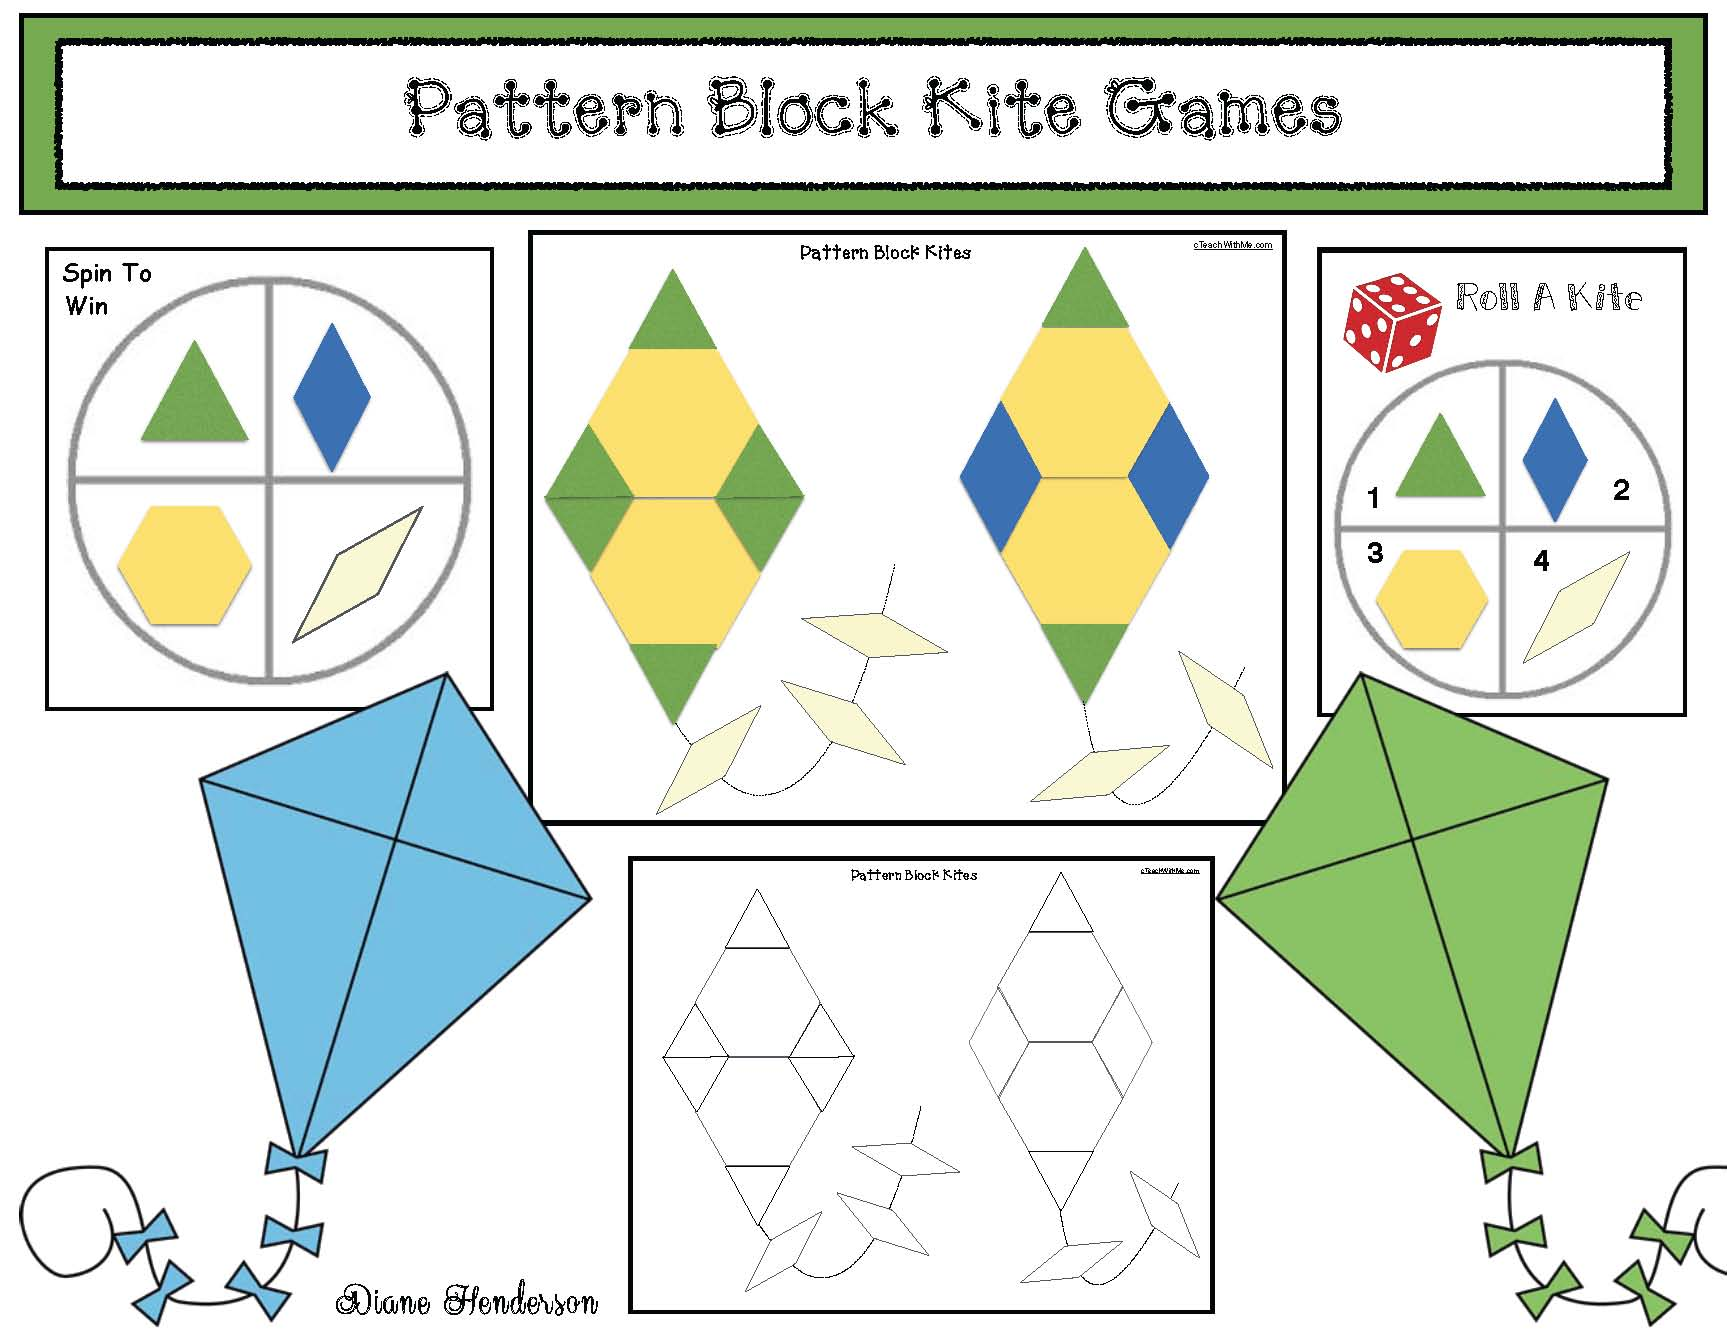 cover pattern block kite